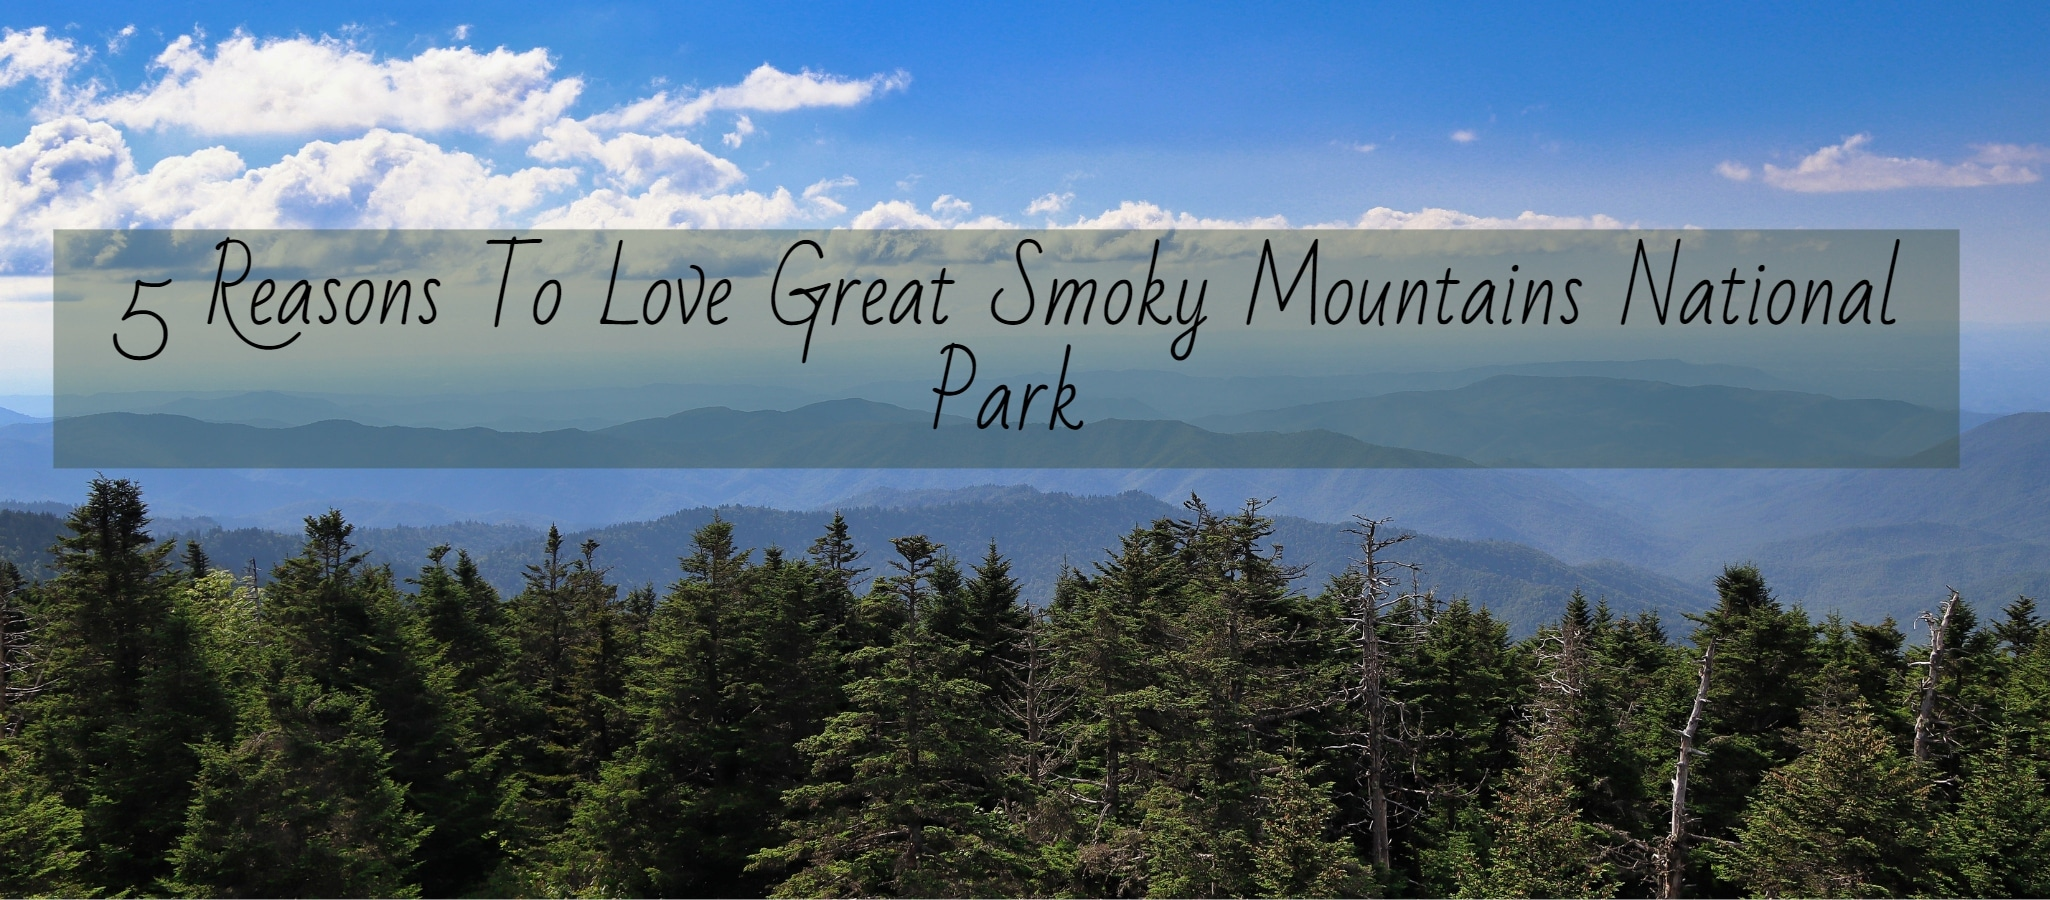 Great Smoky Mountains Feature